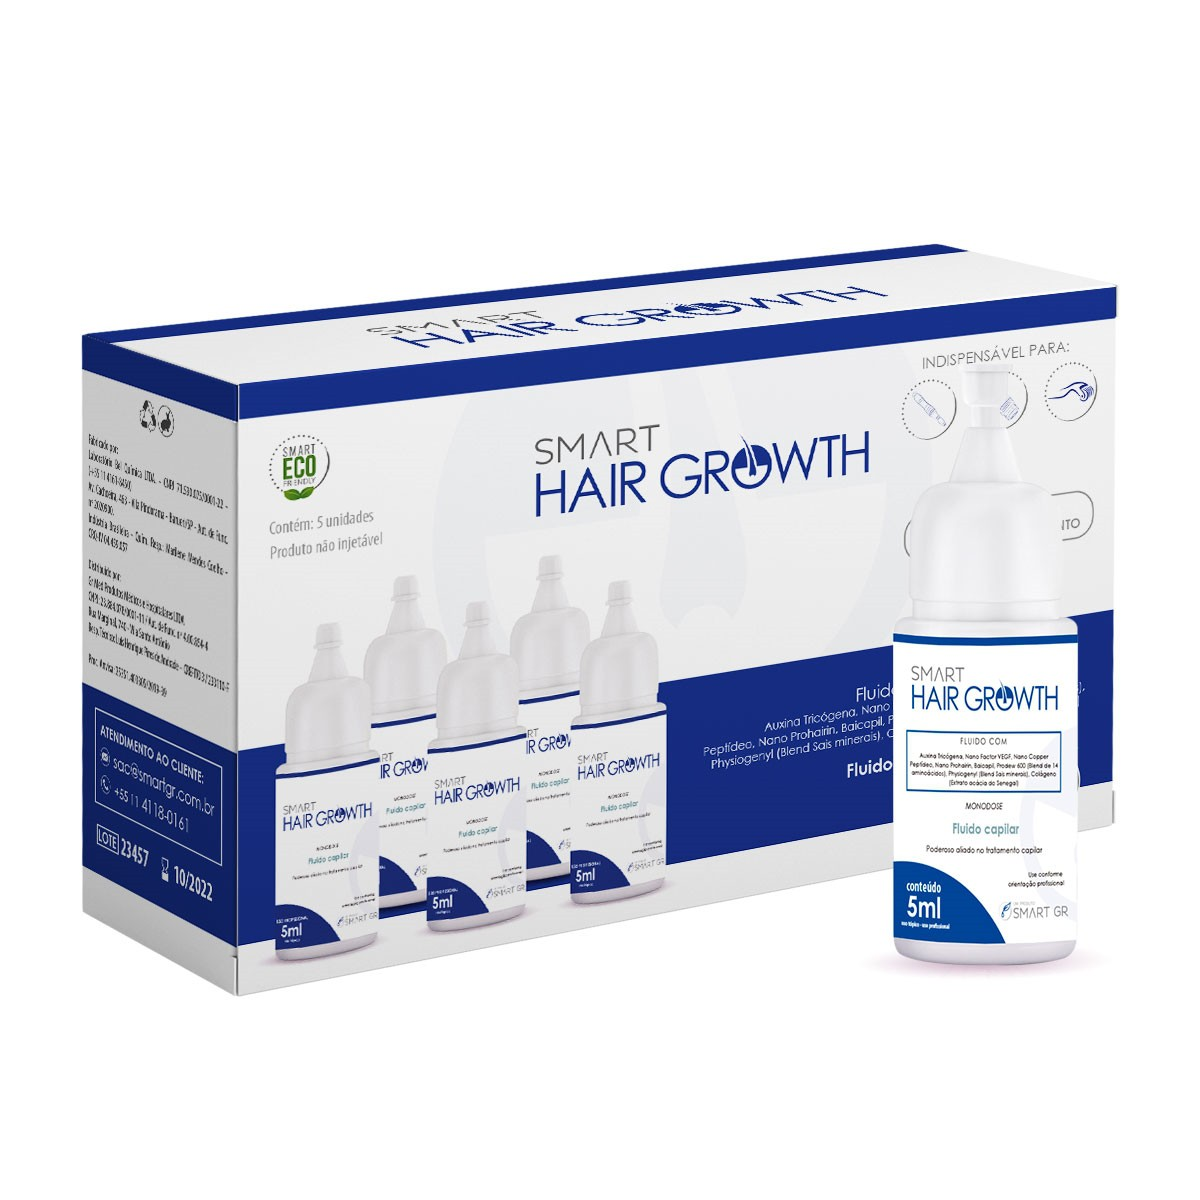 SMART HAIR GROWTH - TERAPIA CAPILAR - 5 MONODOSES DE 5 ML - T0013.20 SMART GR